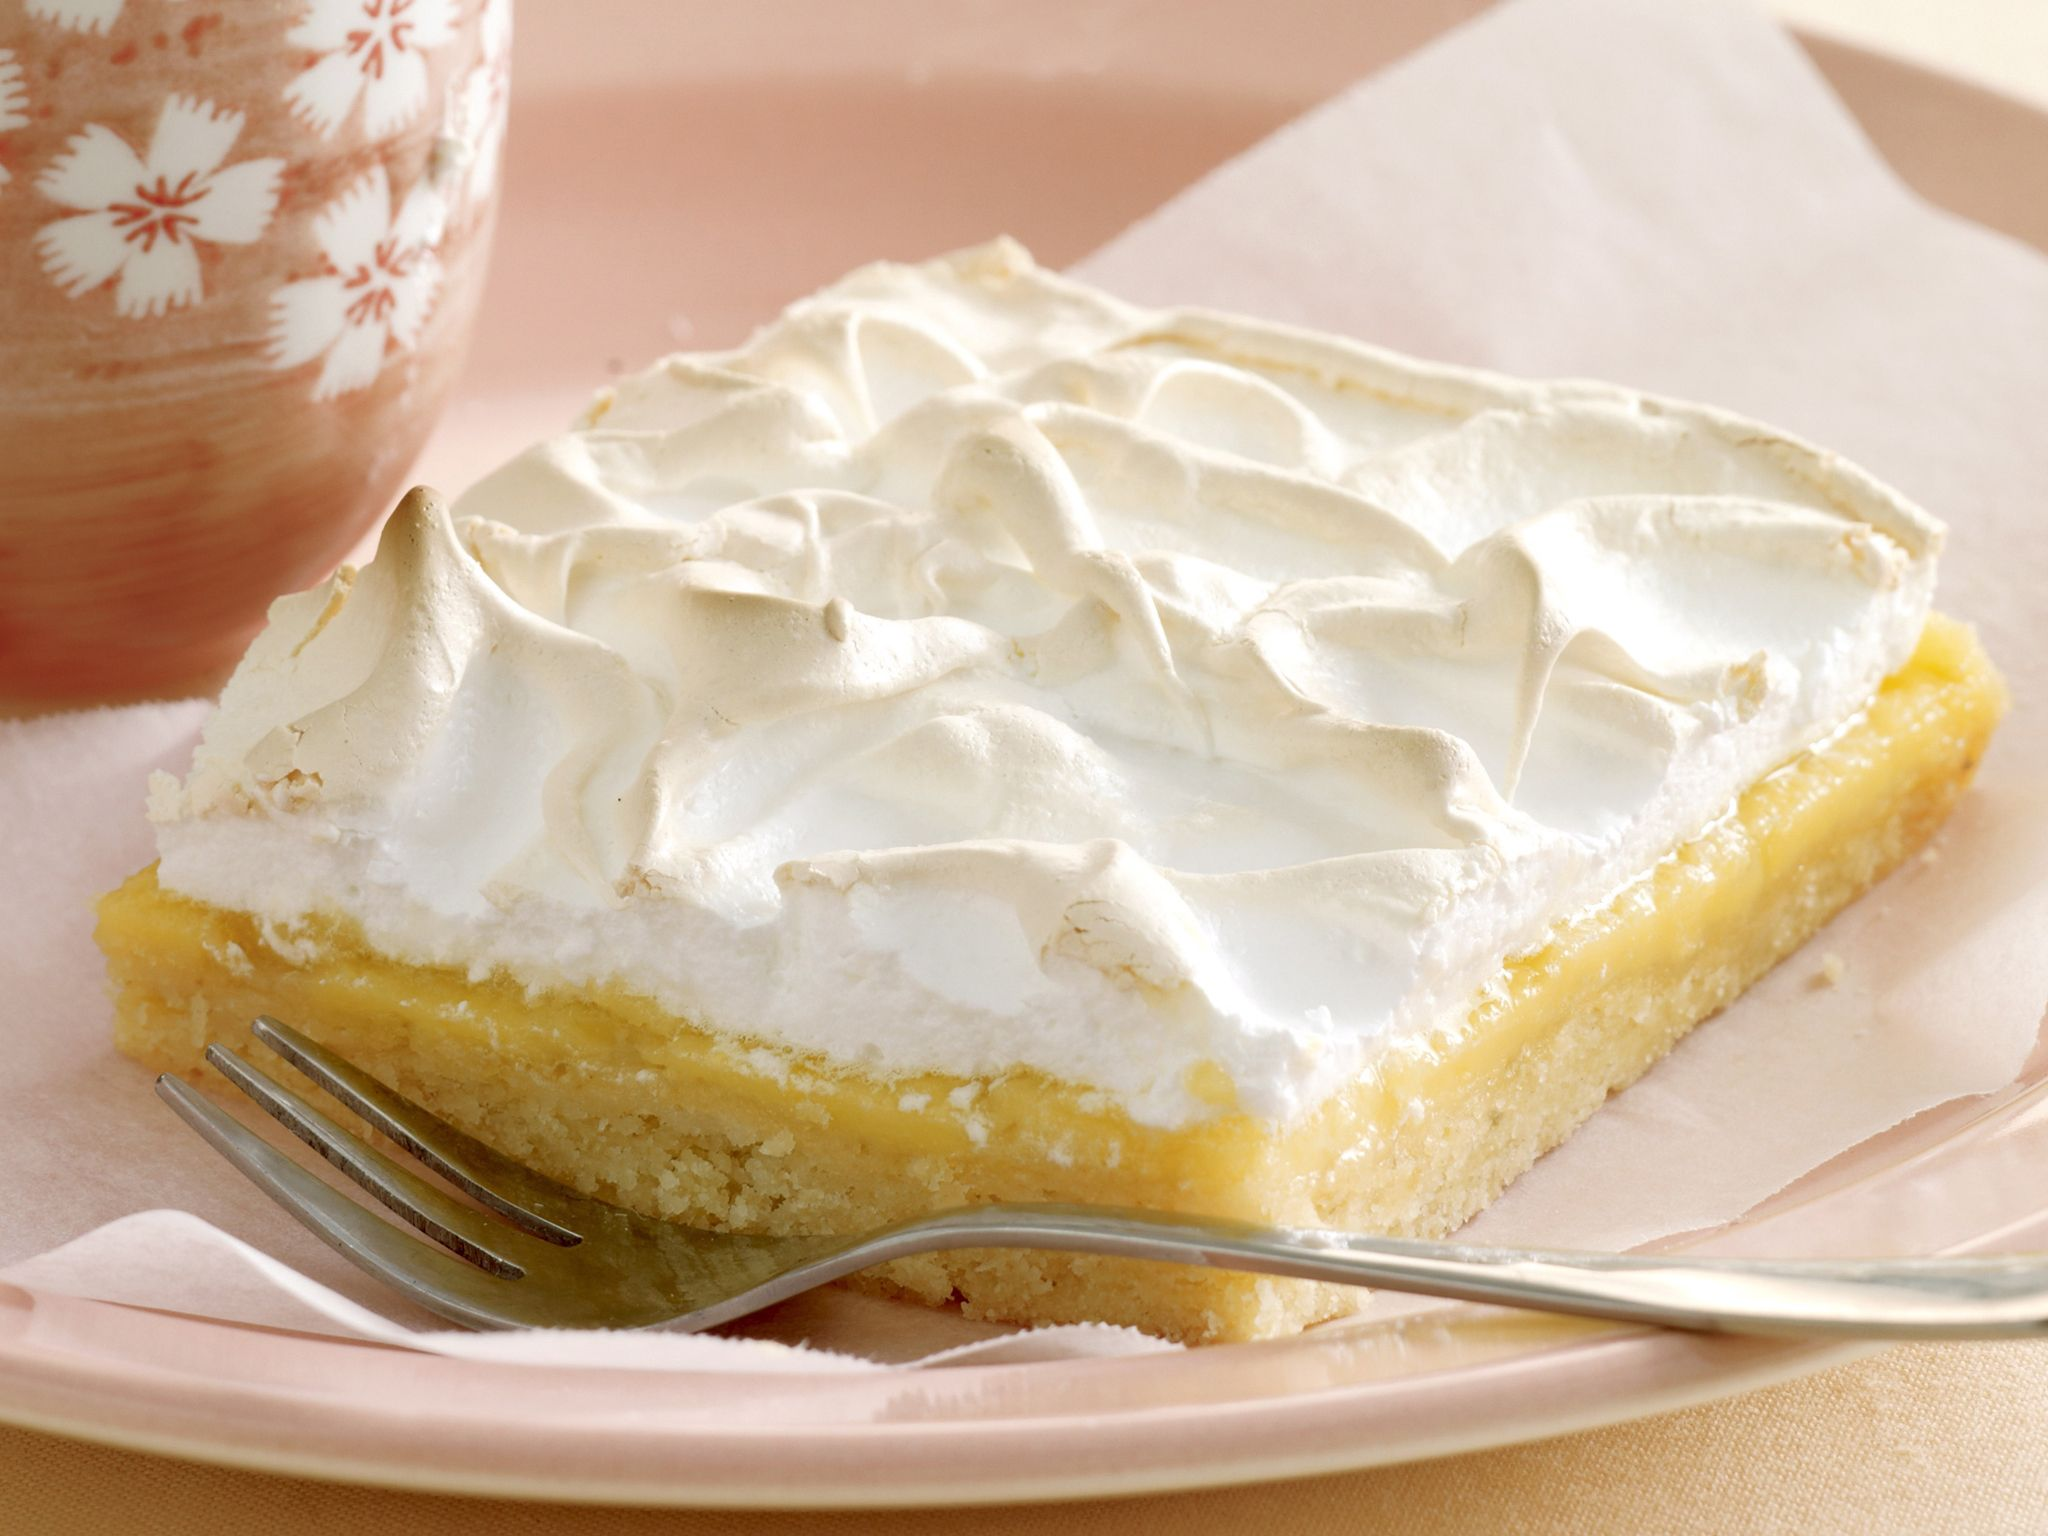 Indulge in tangy lemon and fluffy meringue on a buttery, biscuity base for a deliciously zesty sweet treat.